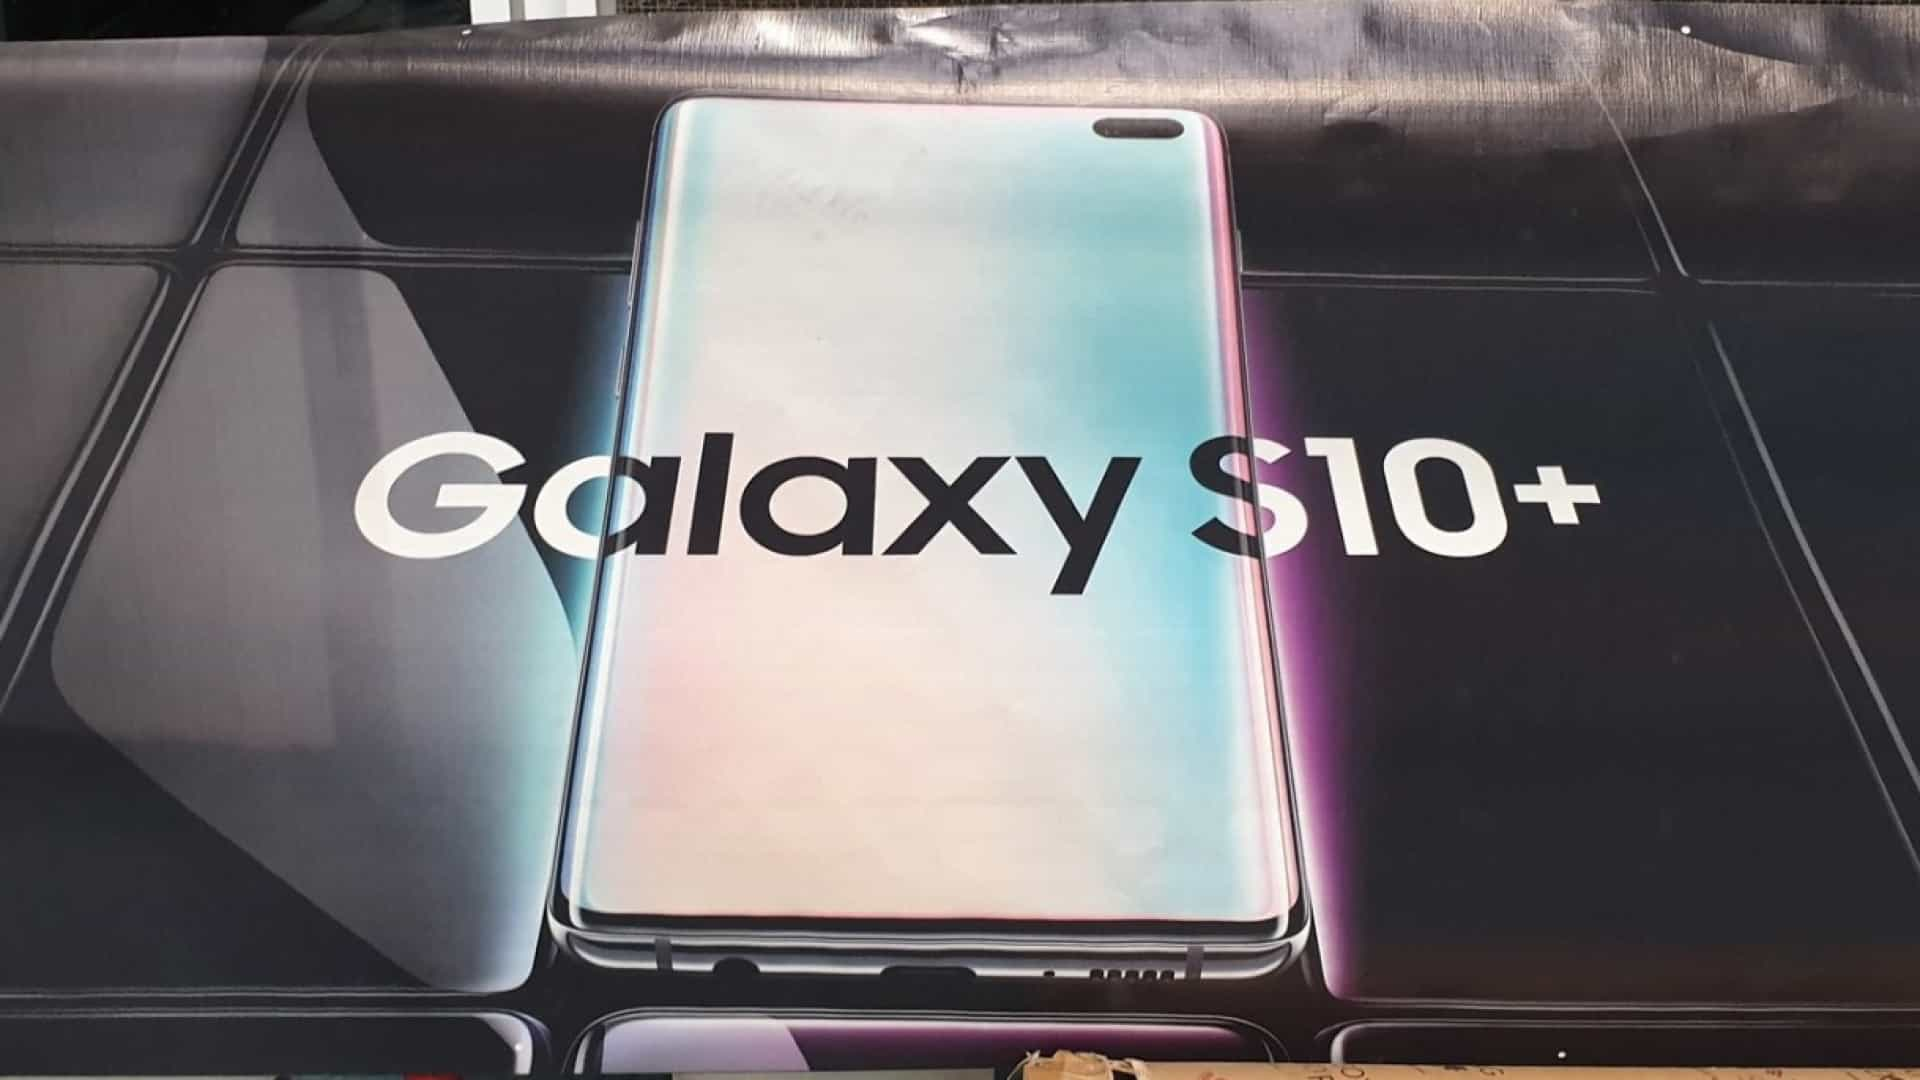 Cartaz do Galaxy S10+ confirma aspeto final do smartphone